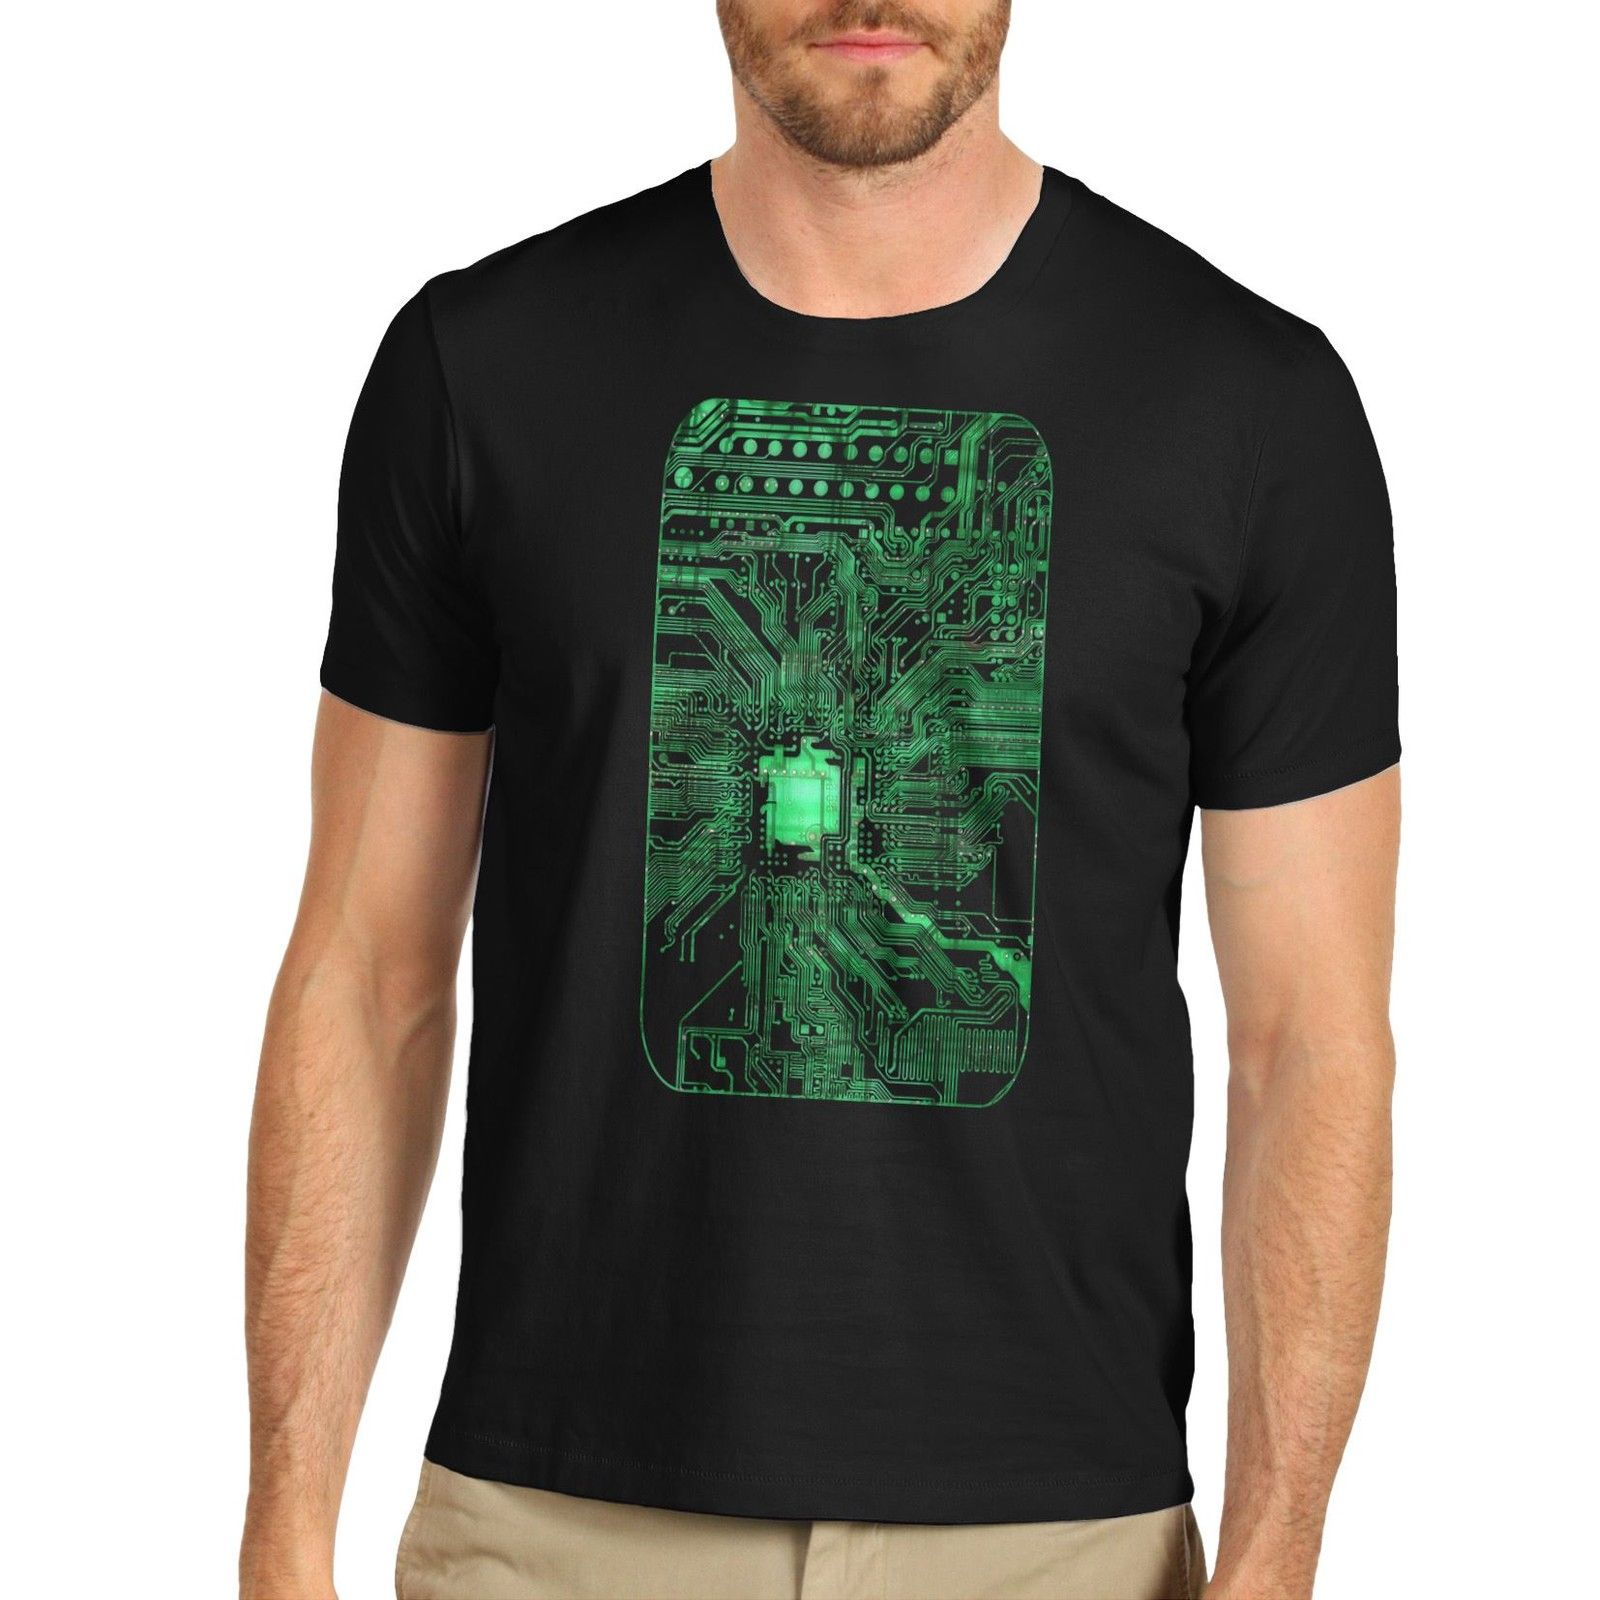 Print Shirt Summer Style Fashionshort Sleeve Printing Crew Neck Electronic Circuit Board T Shirts For Men